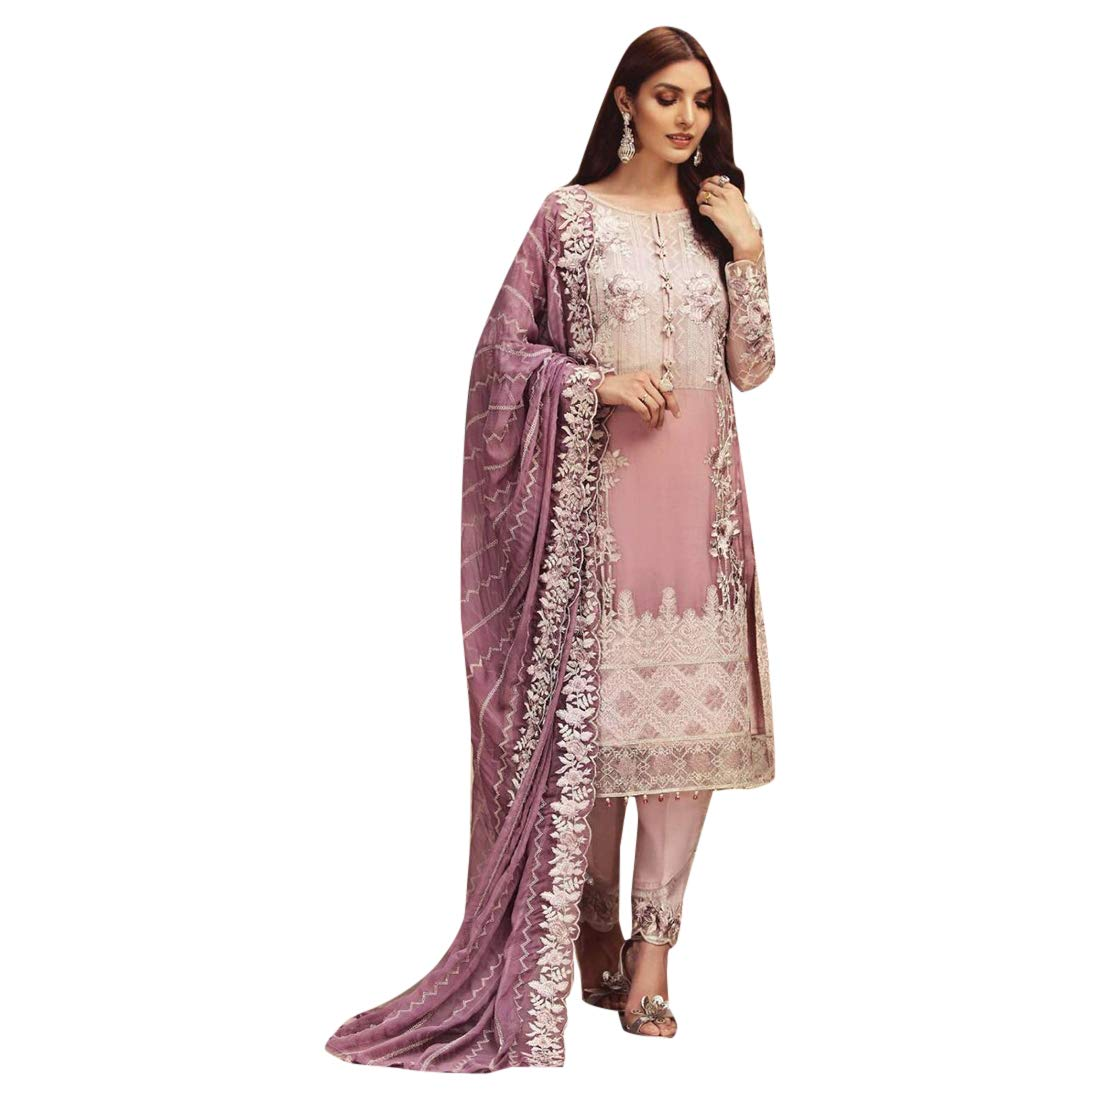 Light Purple ETHNIC EMPORIUM Pakistani Pants Suit Designer Salwar Kameez Net Ready to Wear Indian Muslim Lawn Christmas 7423